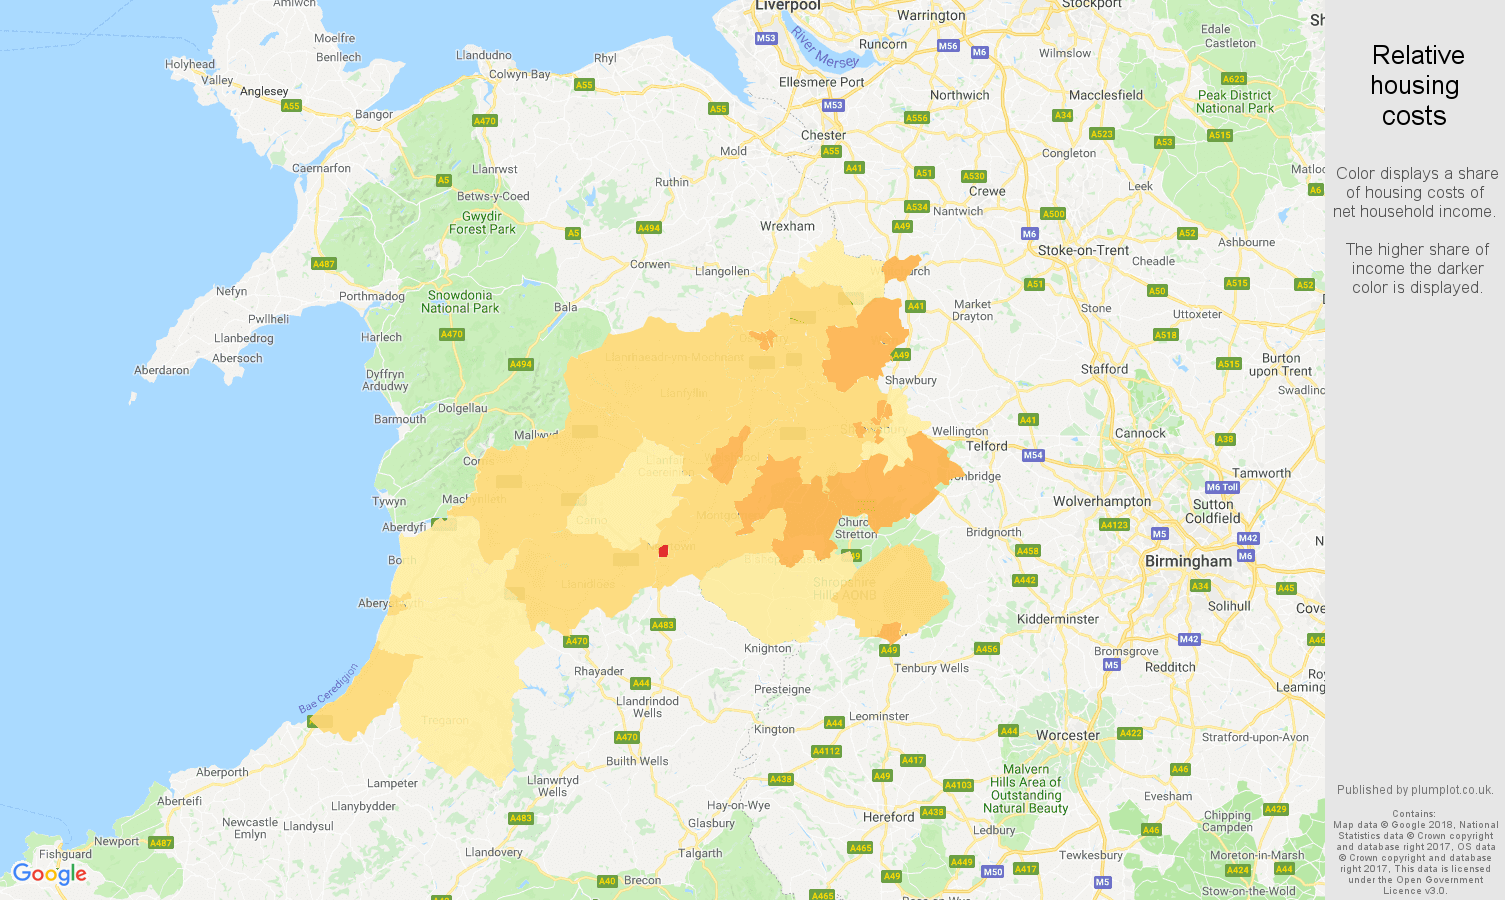 Shrewsbury relative housing costs map